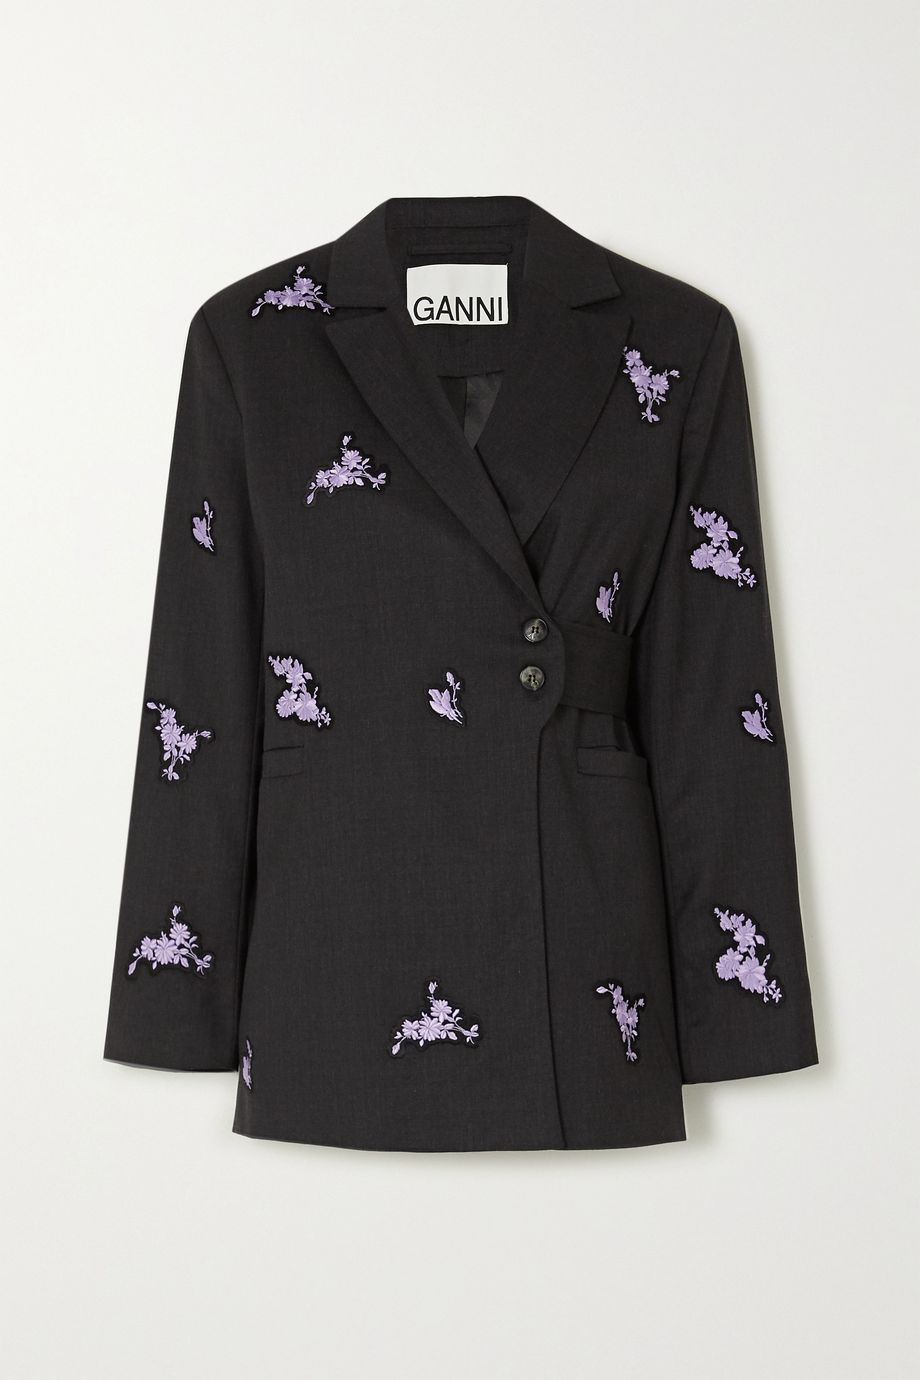 GANNI Belted embroidered wool blazer